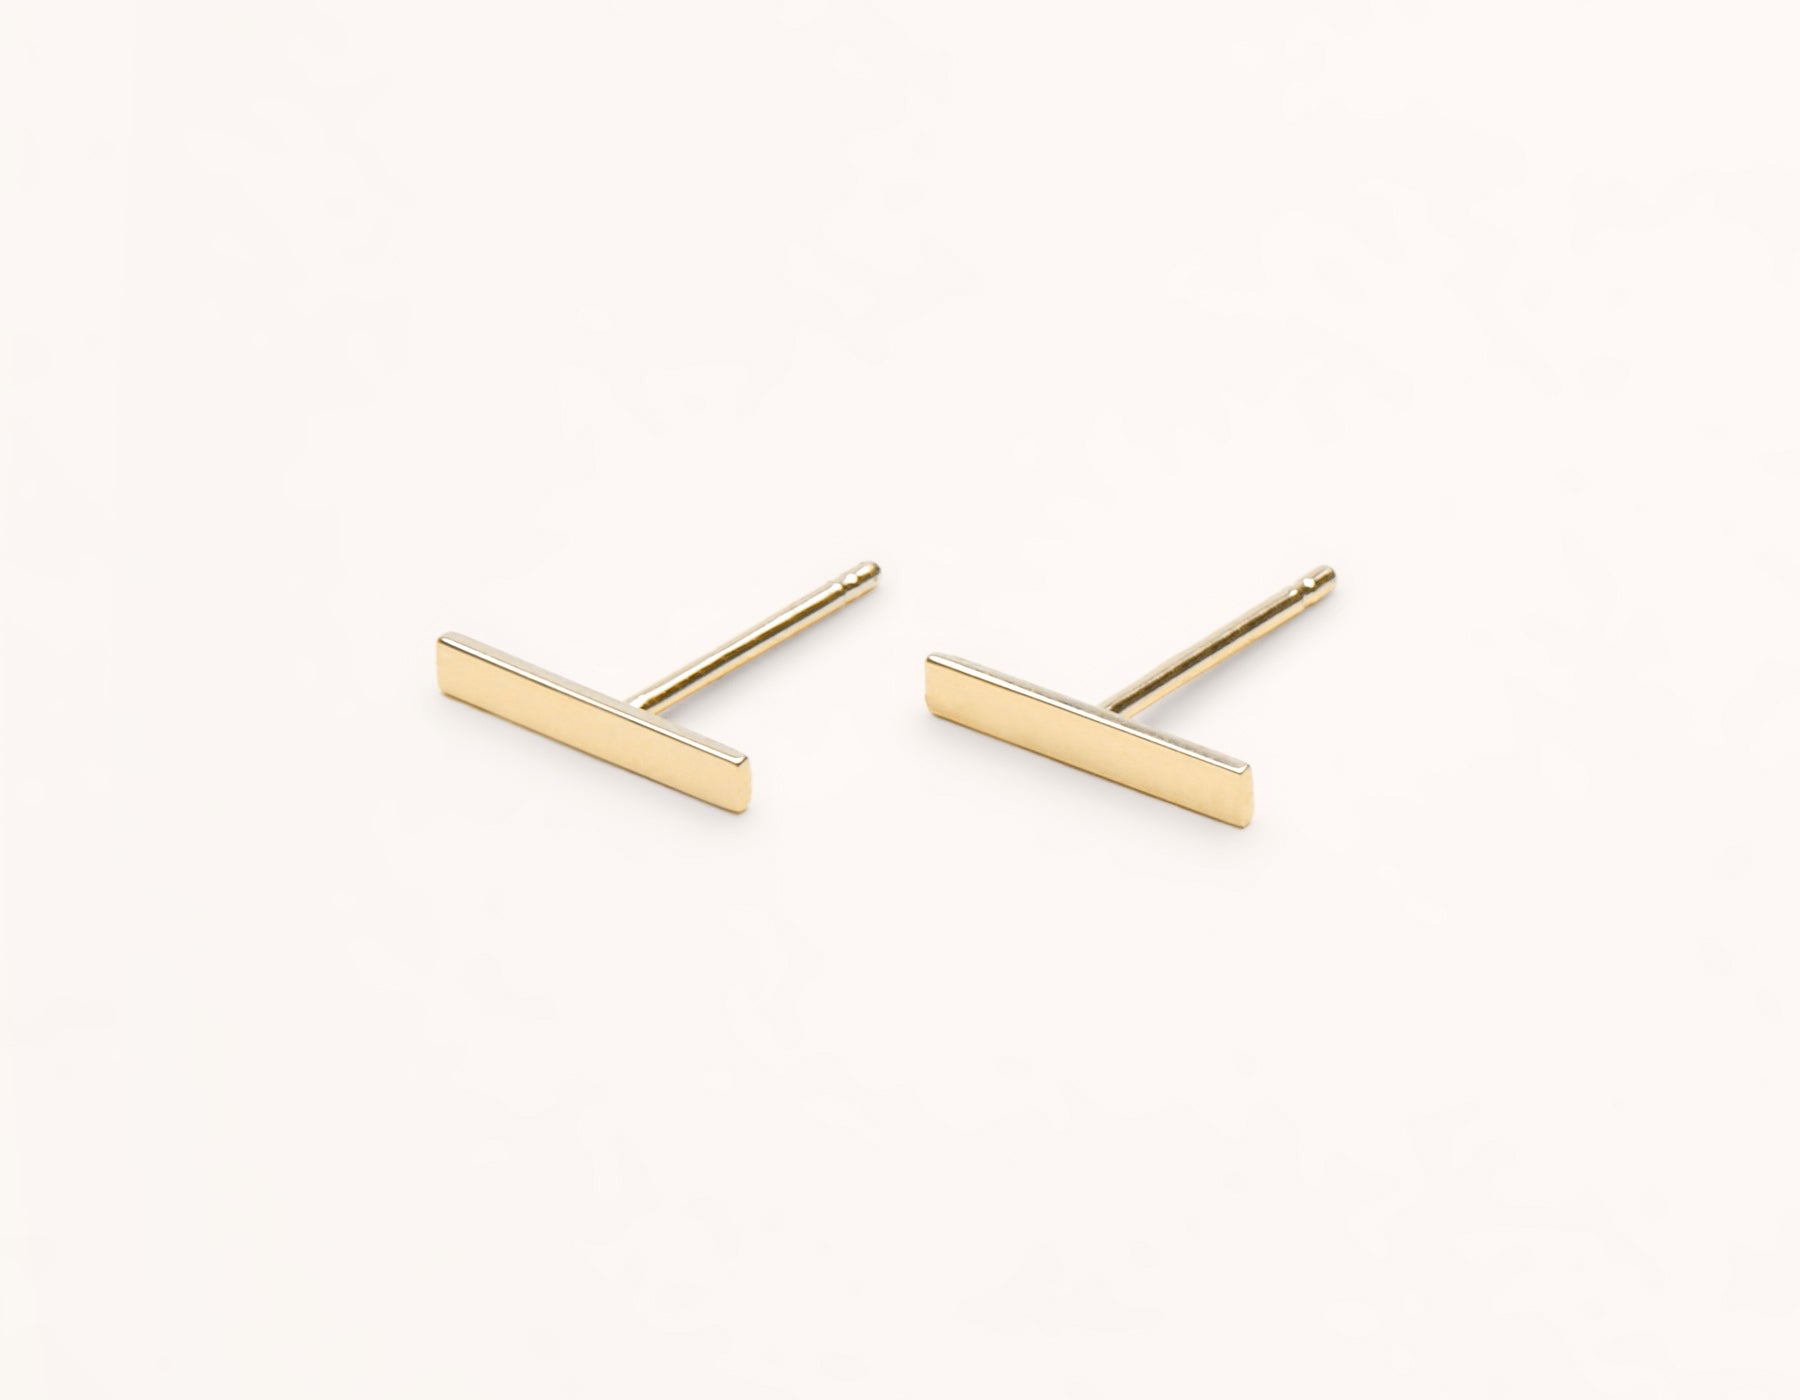 Minimal Vrai & Oro 14k Solid Yellow Gold Line Stud Earring